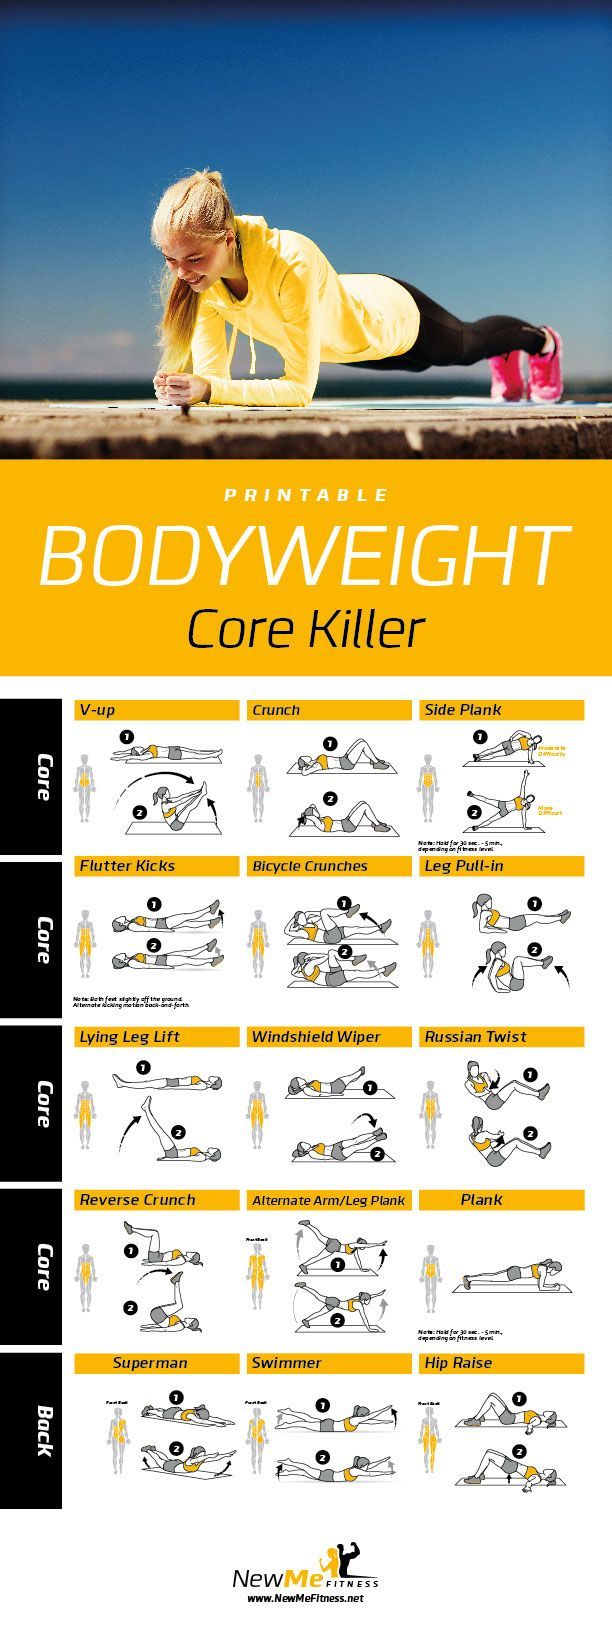 graphic about Trx Workout Plan Printable titled Exercise Strategies : Printable Main Security Ball Exercise session Poster